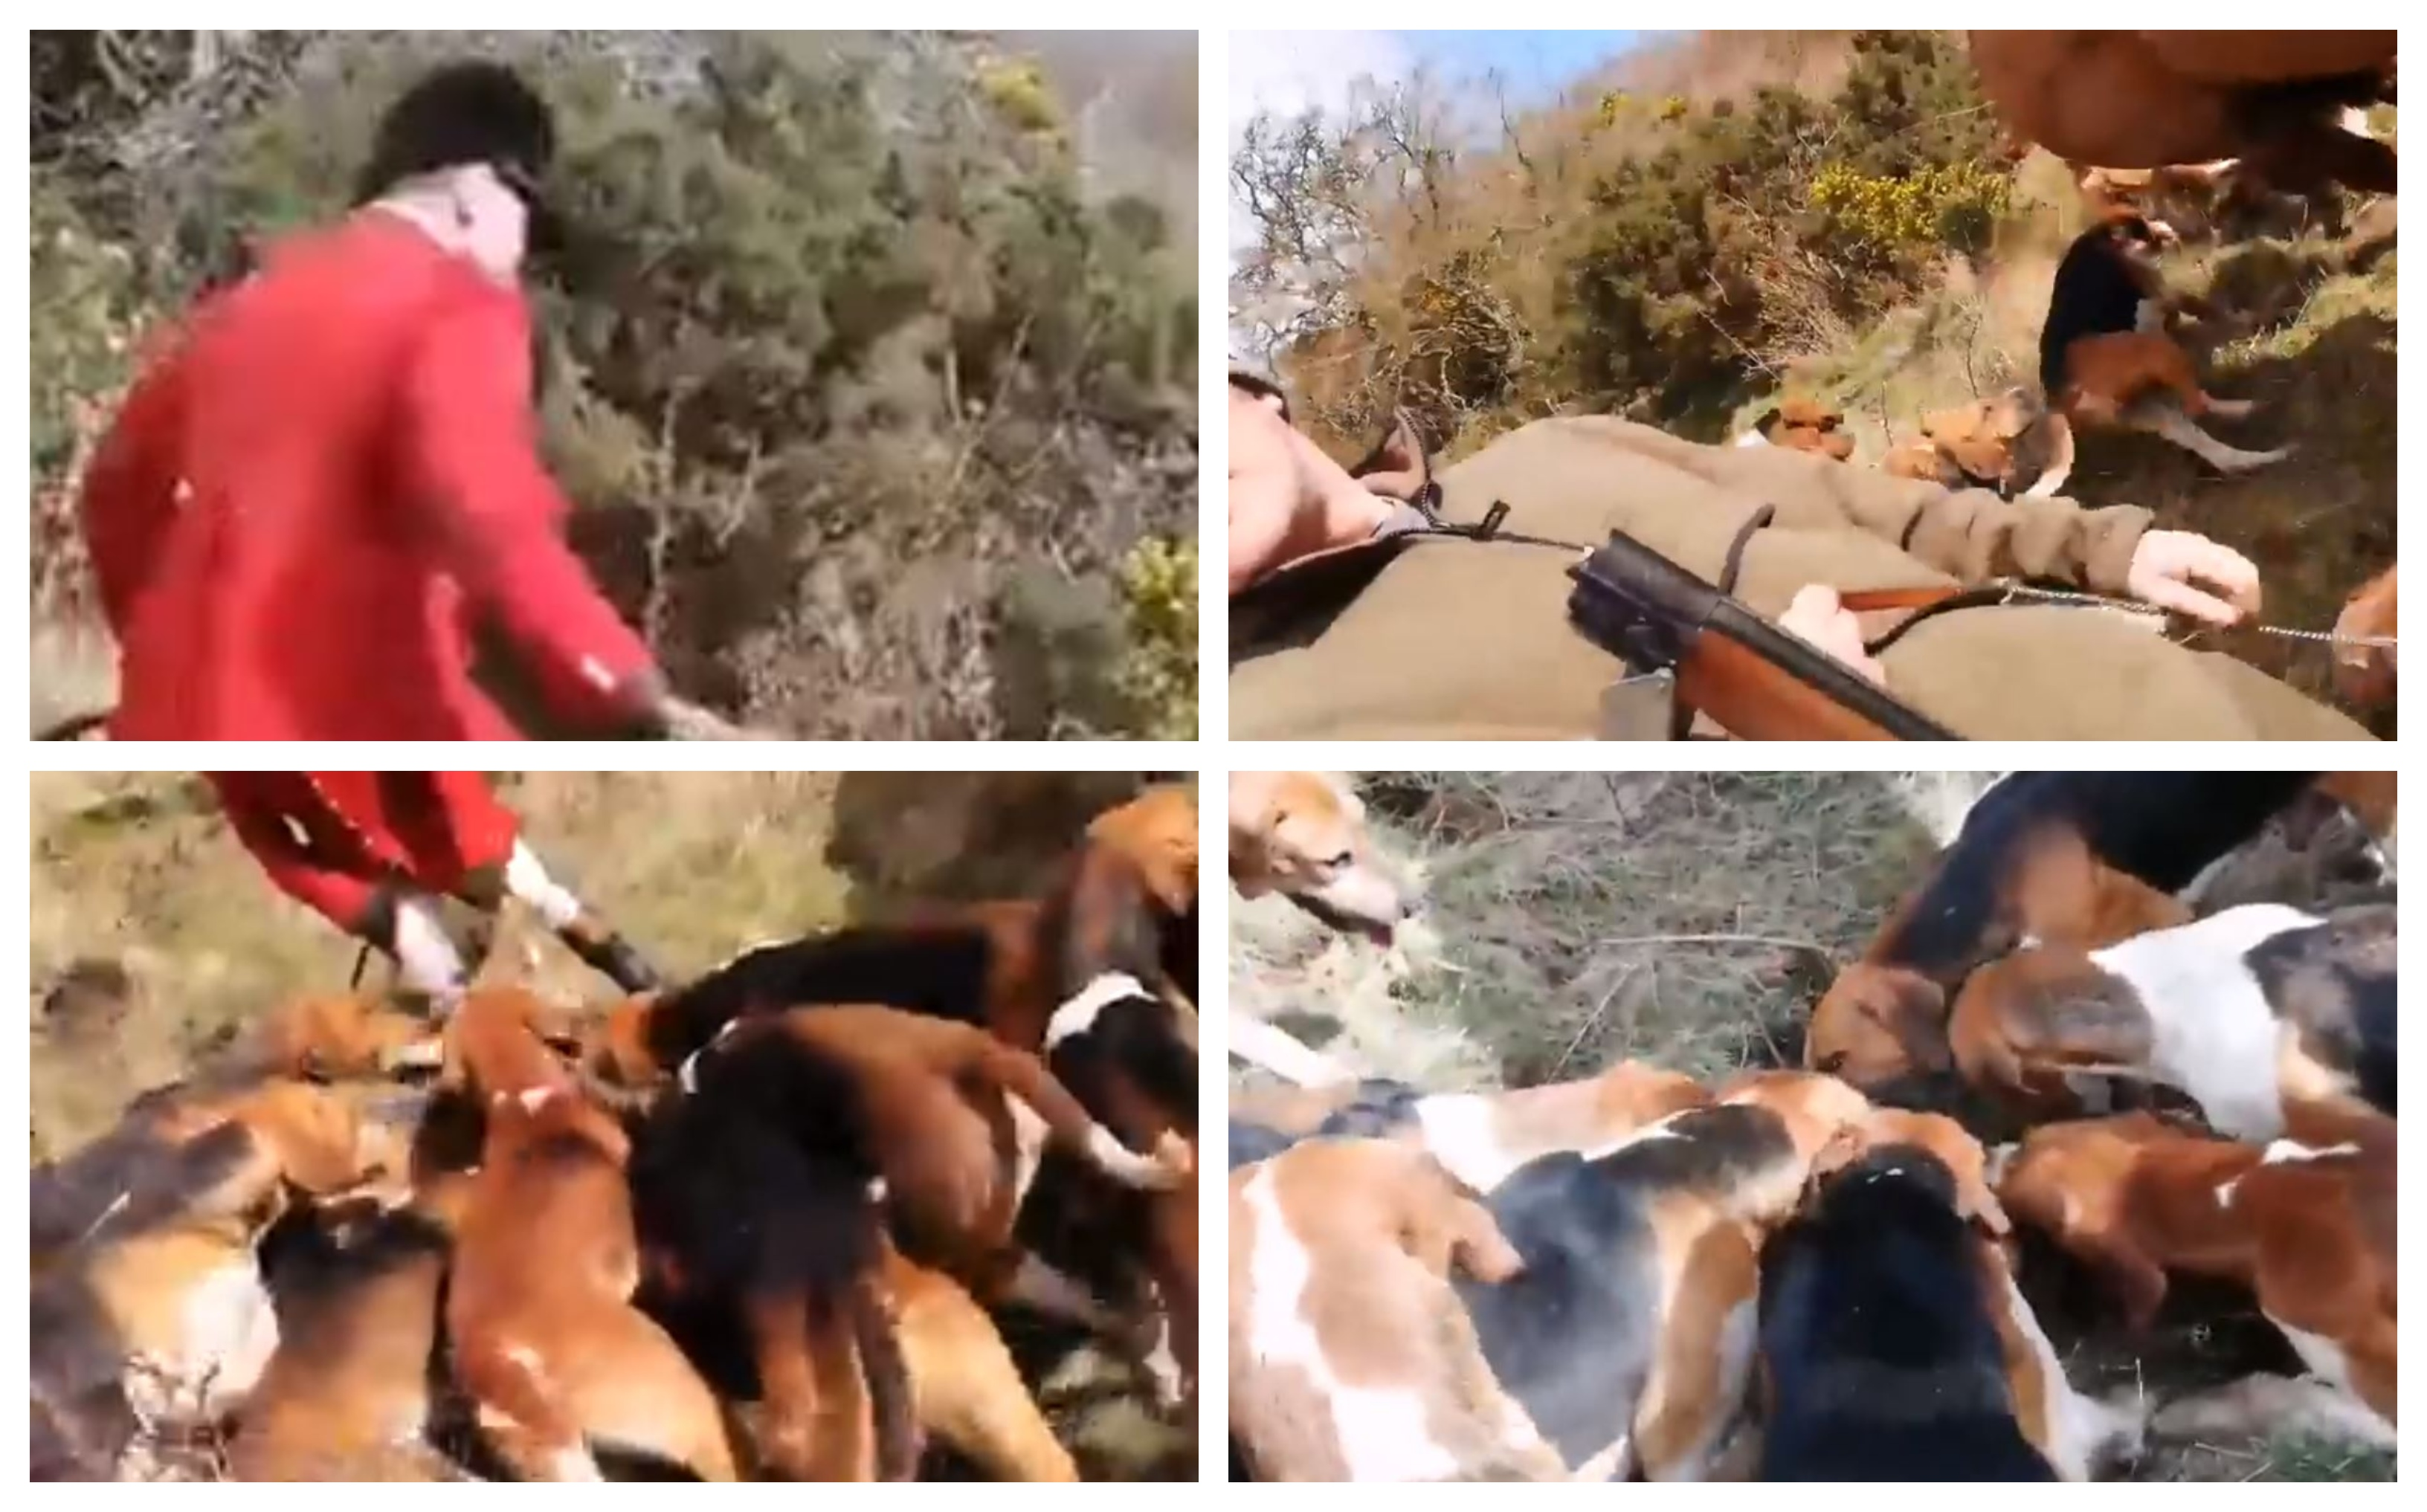 Footage of the recent fox killing in Fife was posted online by hunt saboteurs.